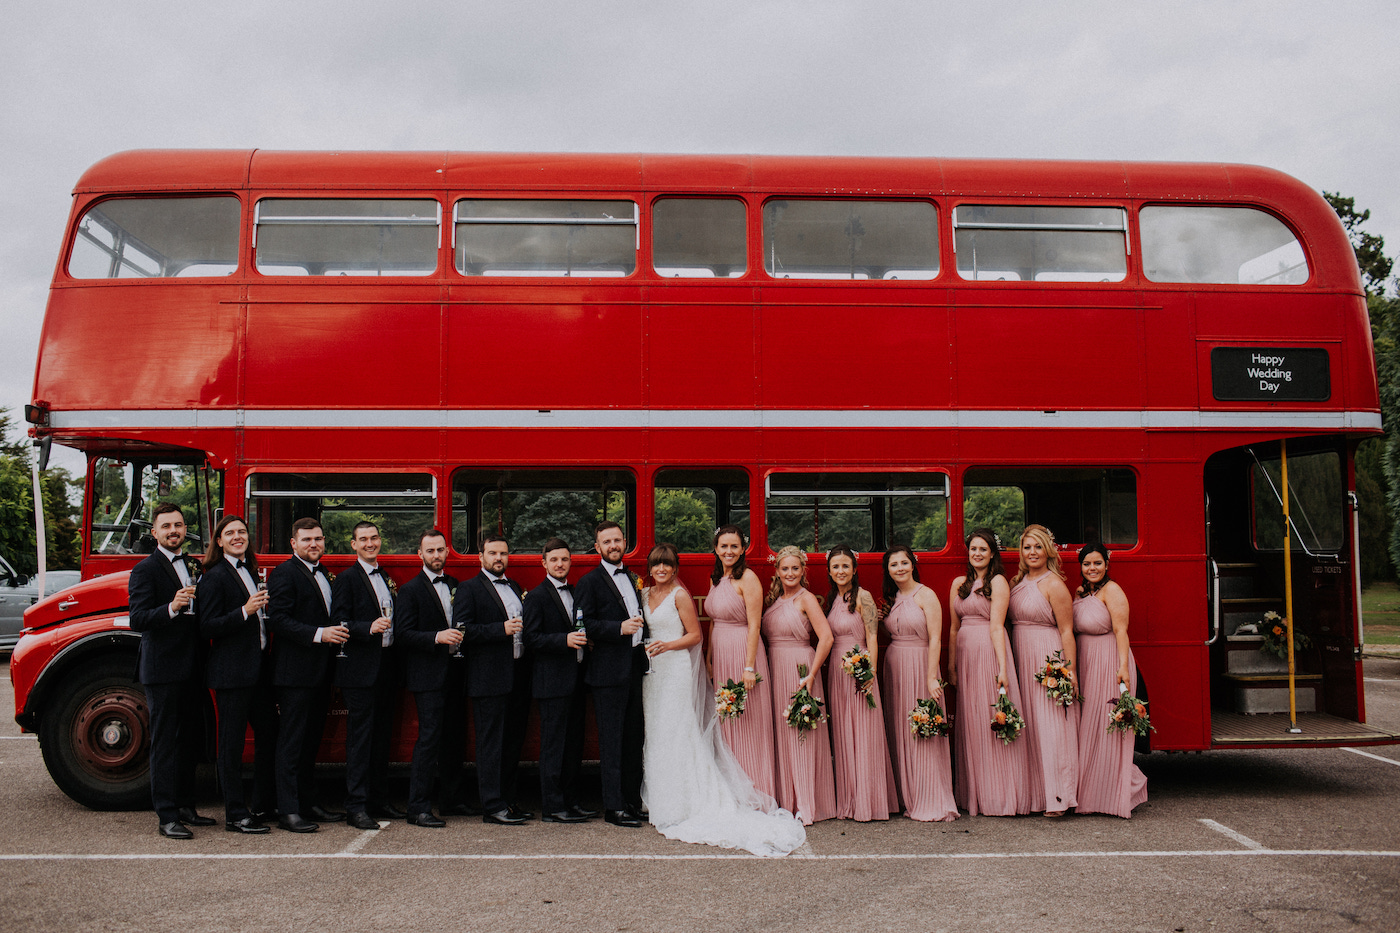 glastonbury festival wedding red double decker bus